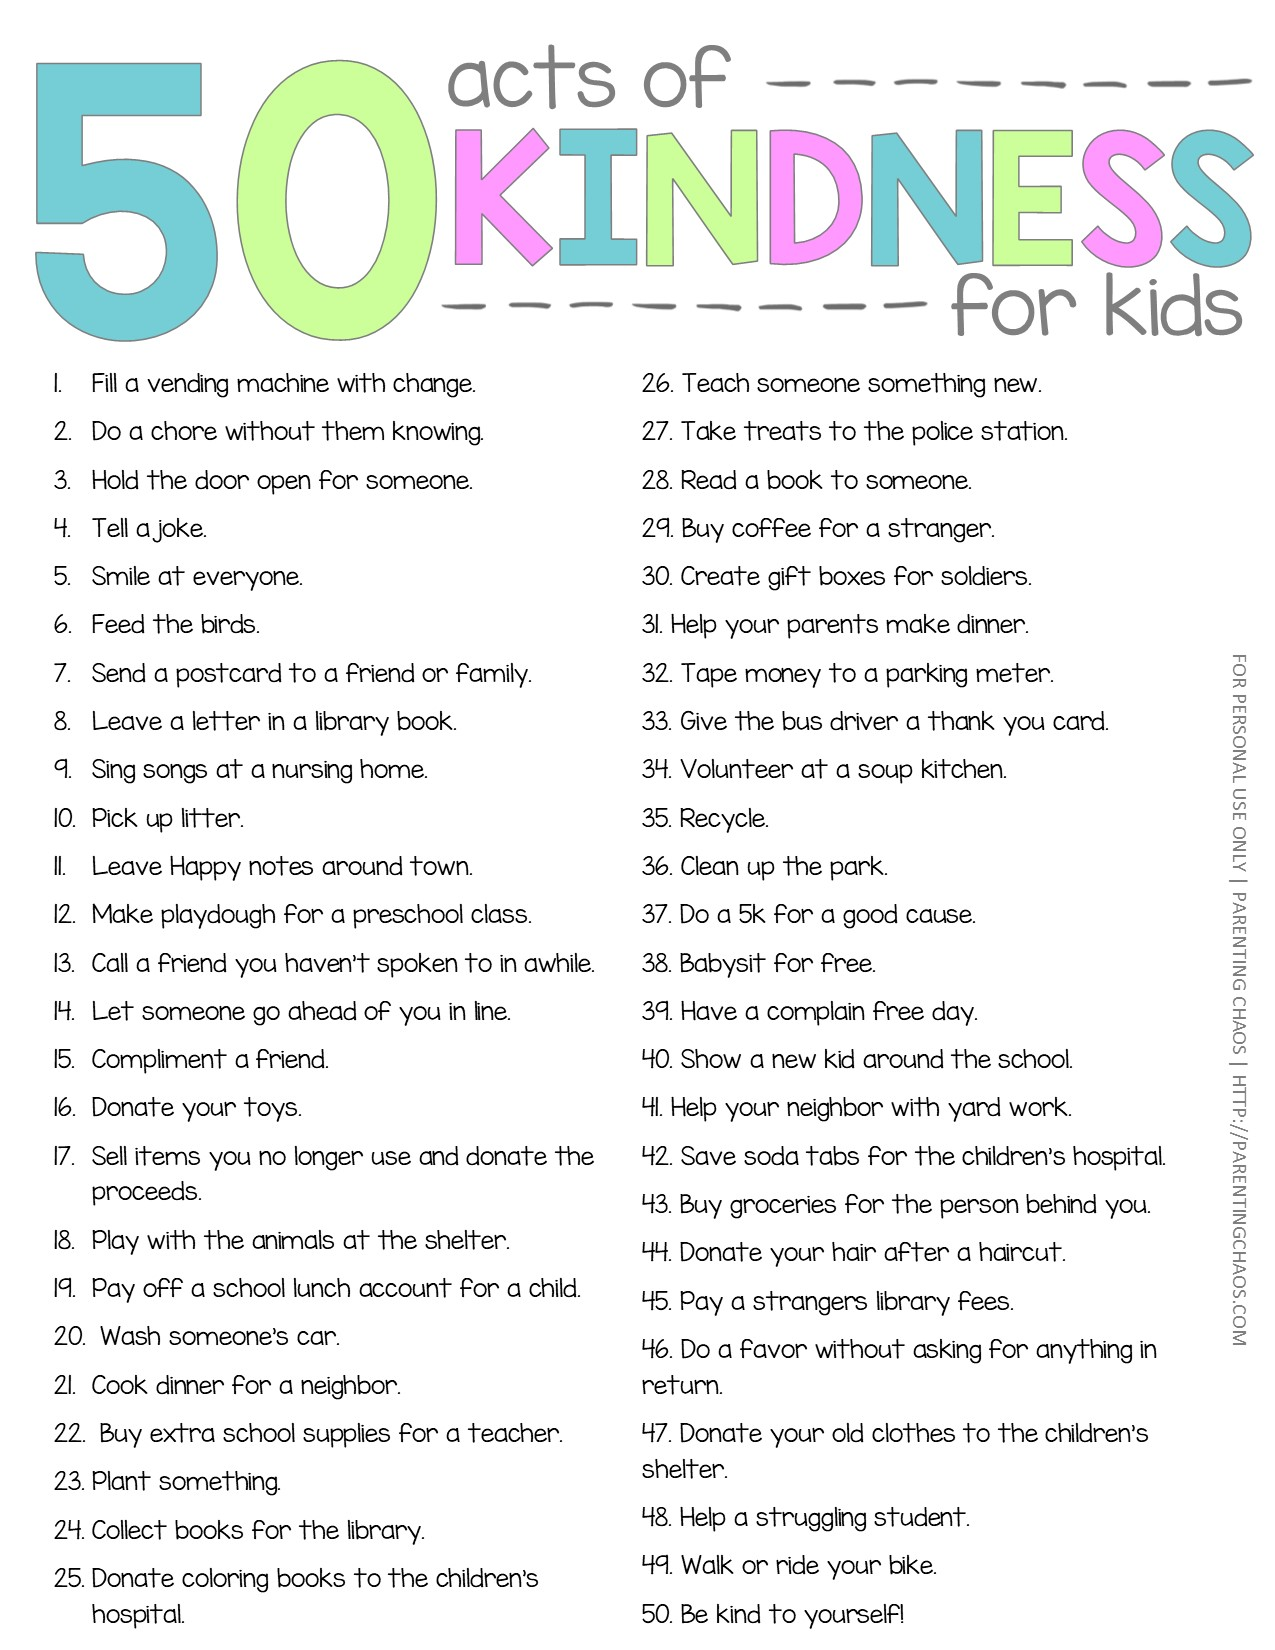 50 Random Acts of Kindness for Kids